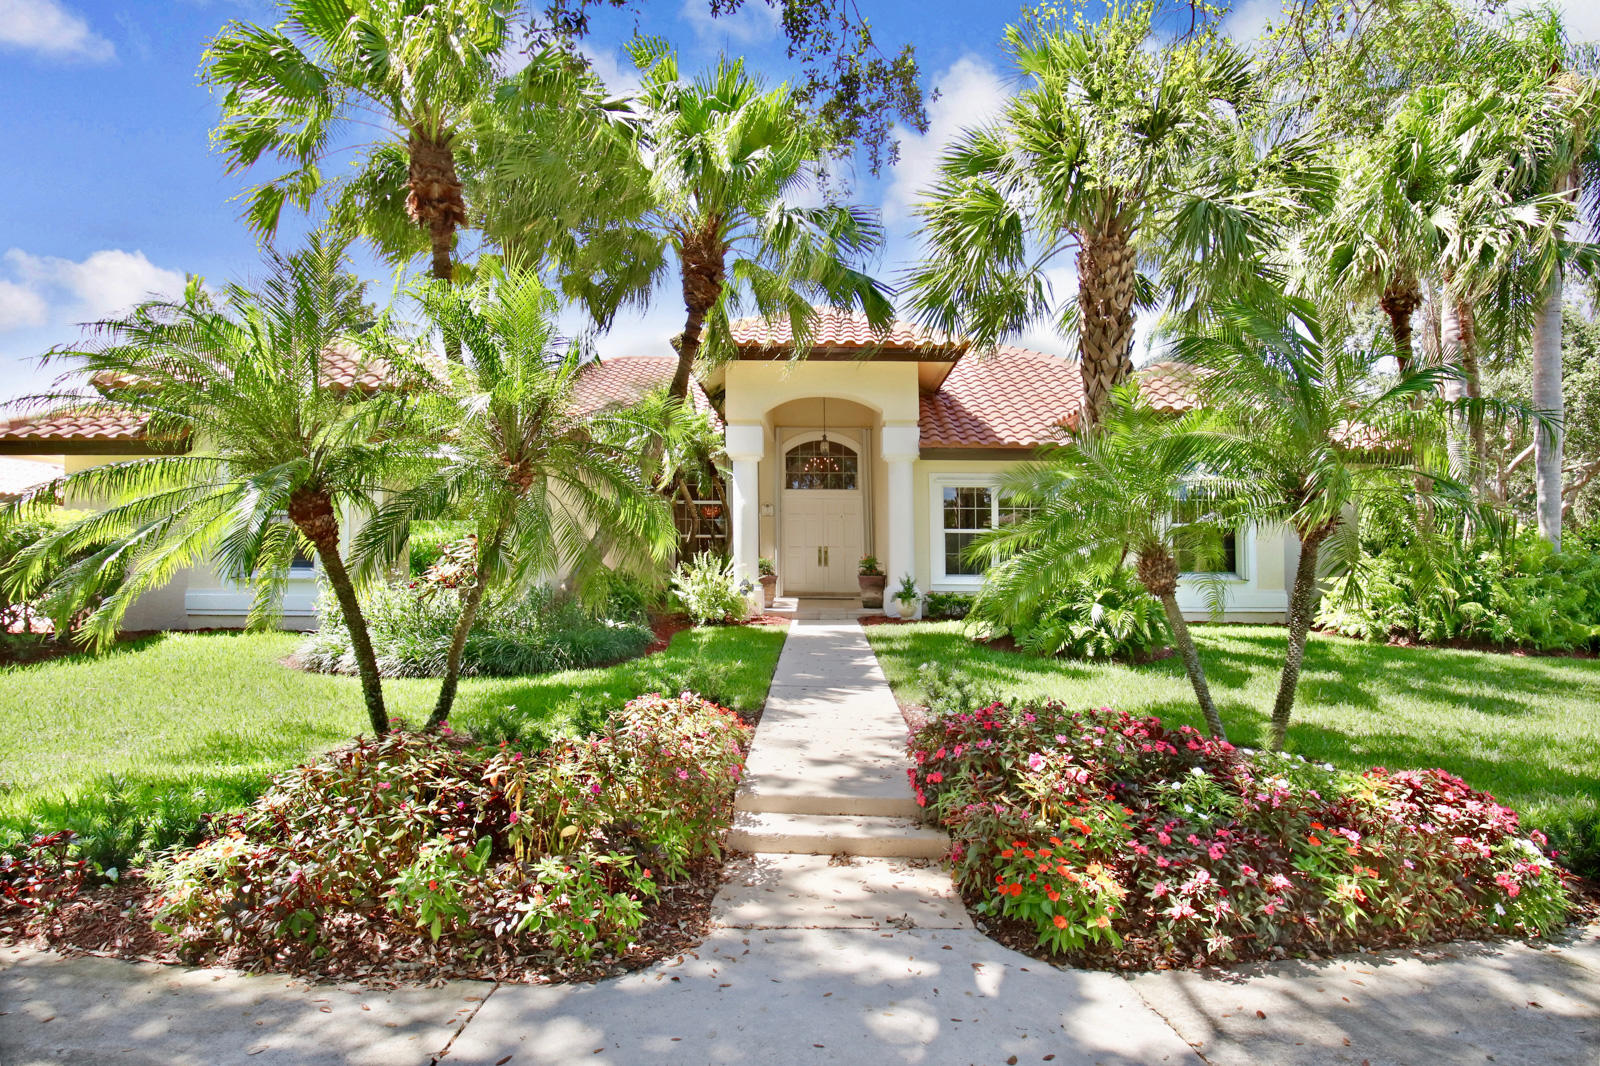 New Home for sale at 7 Eastwinds Circle in Tequesta